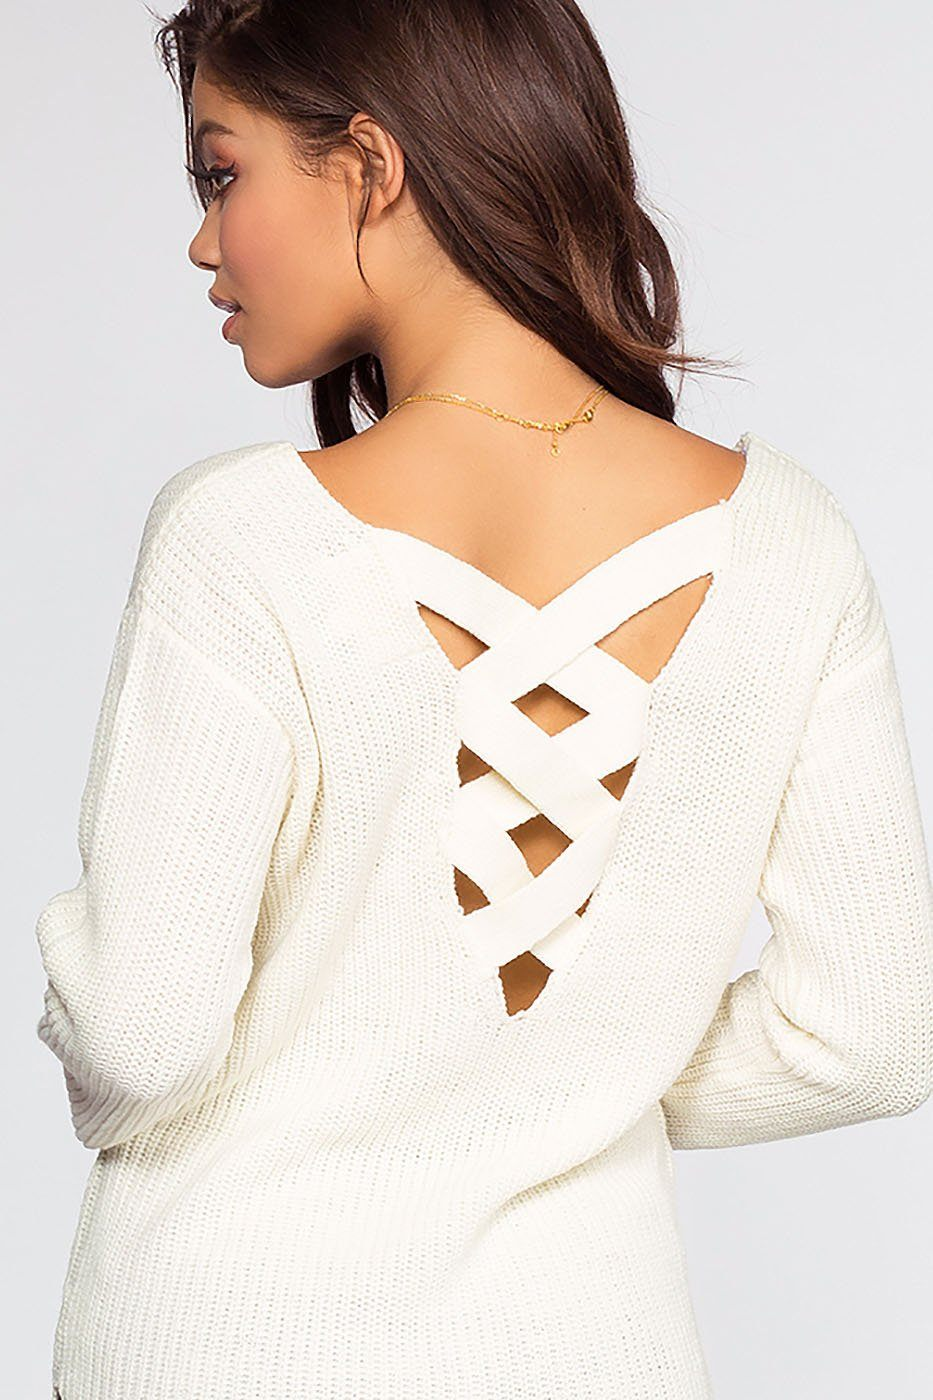 Priestley Lace Back Sweater - Ivory | Ambiance